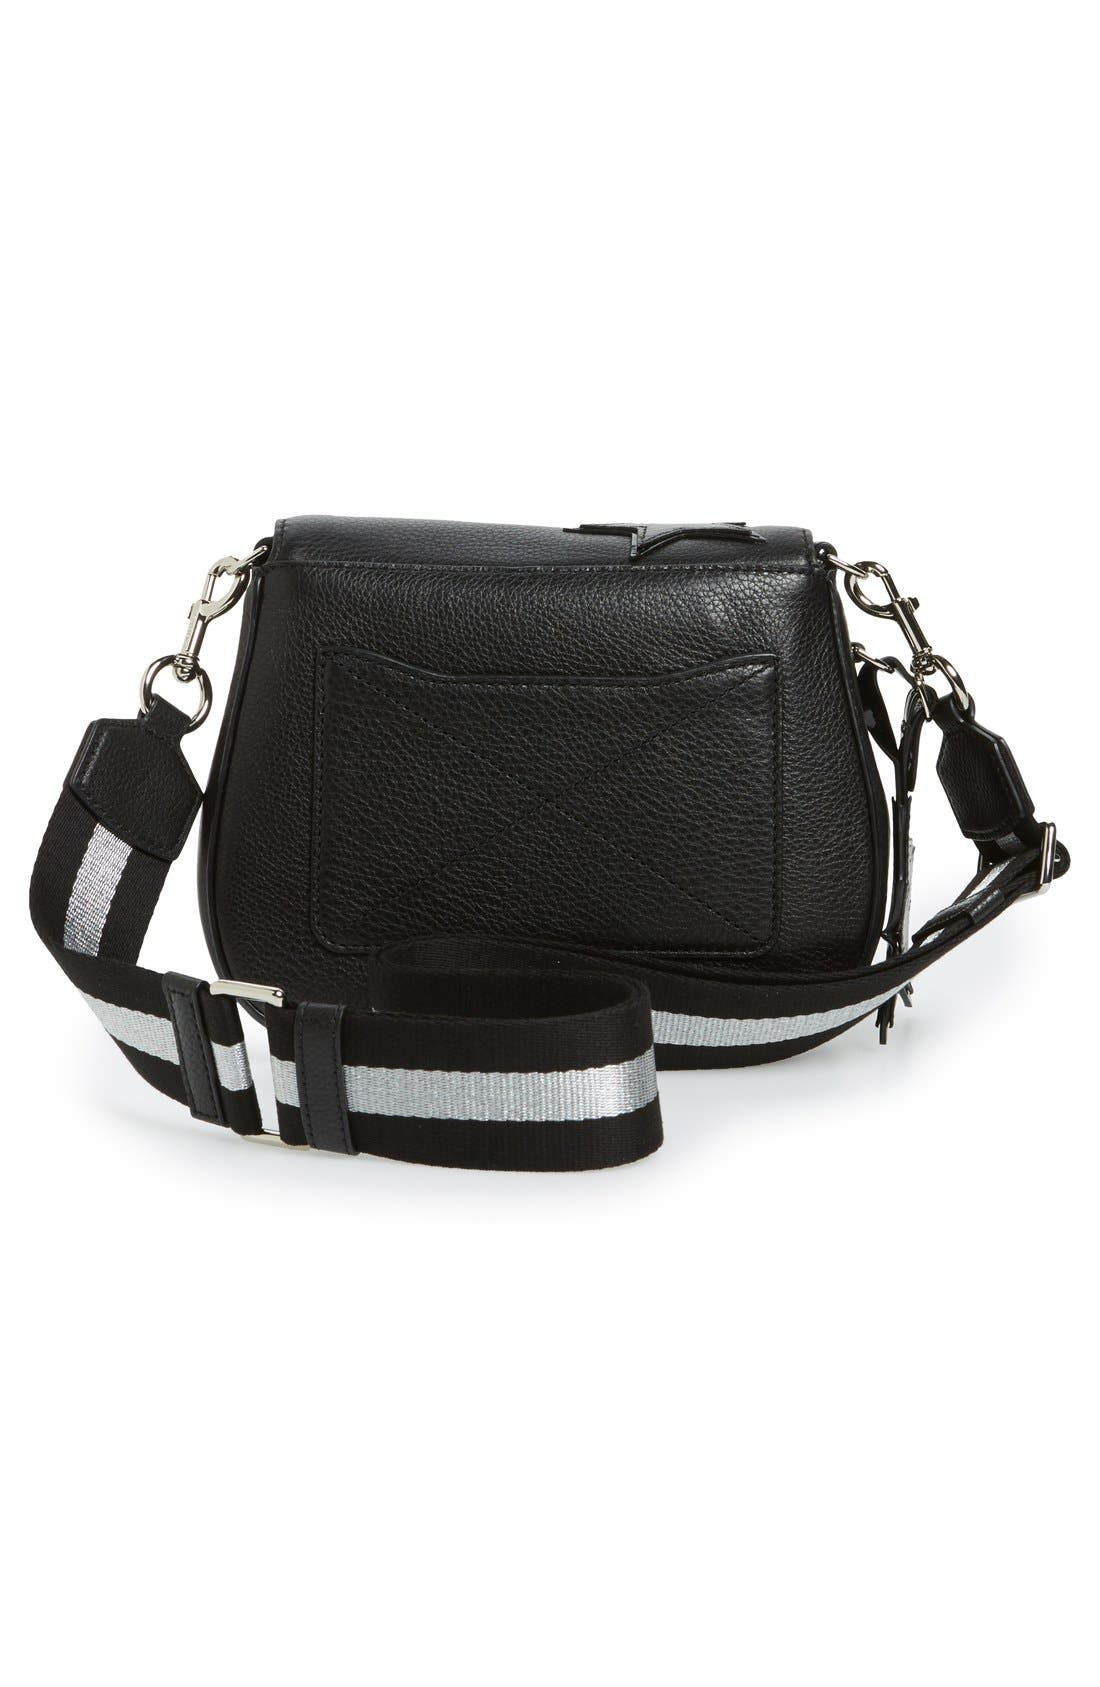 MARC JACOBS,                             'Star' Leather Crossbody Bag,                             Alternate thumbnail 4, color,                             002